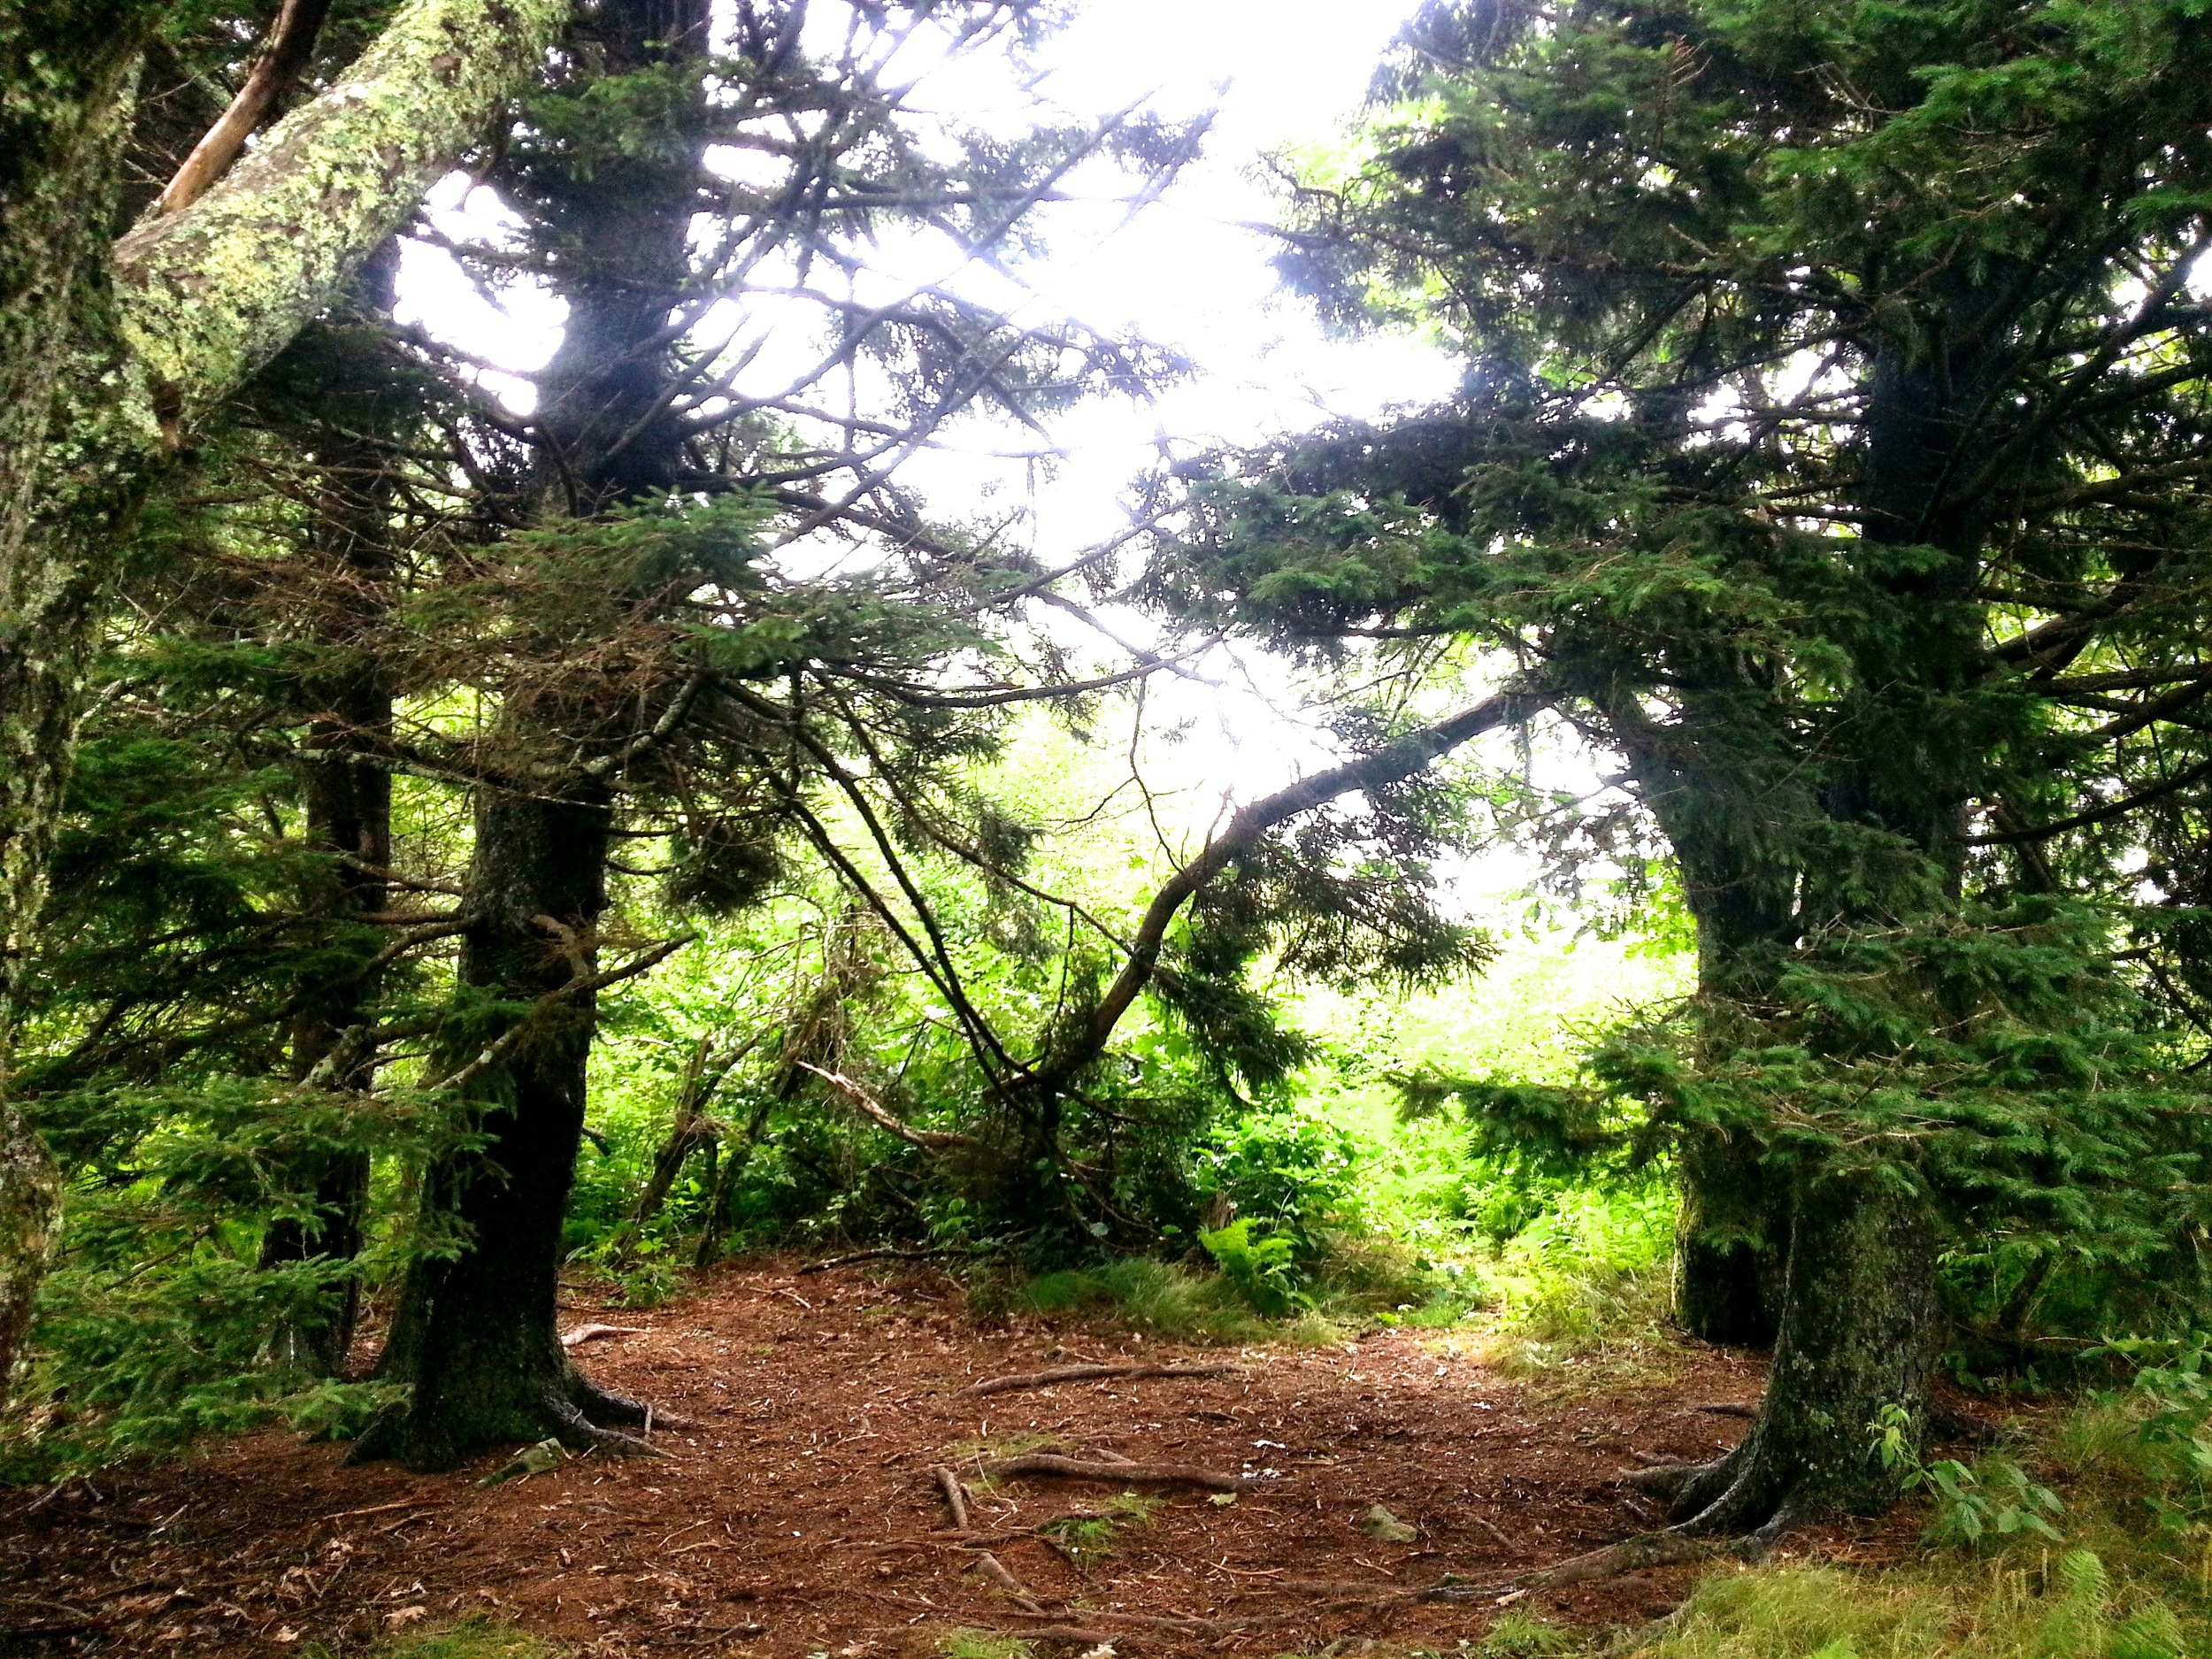 A grove of evergreens tucked into a corner of the ridge.